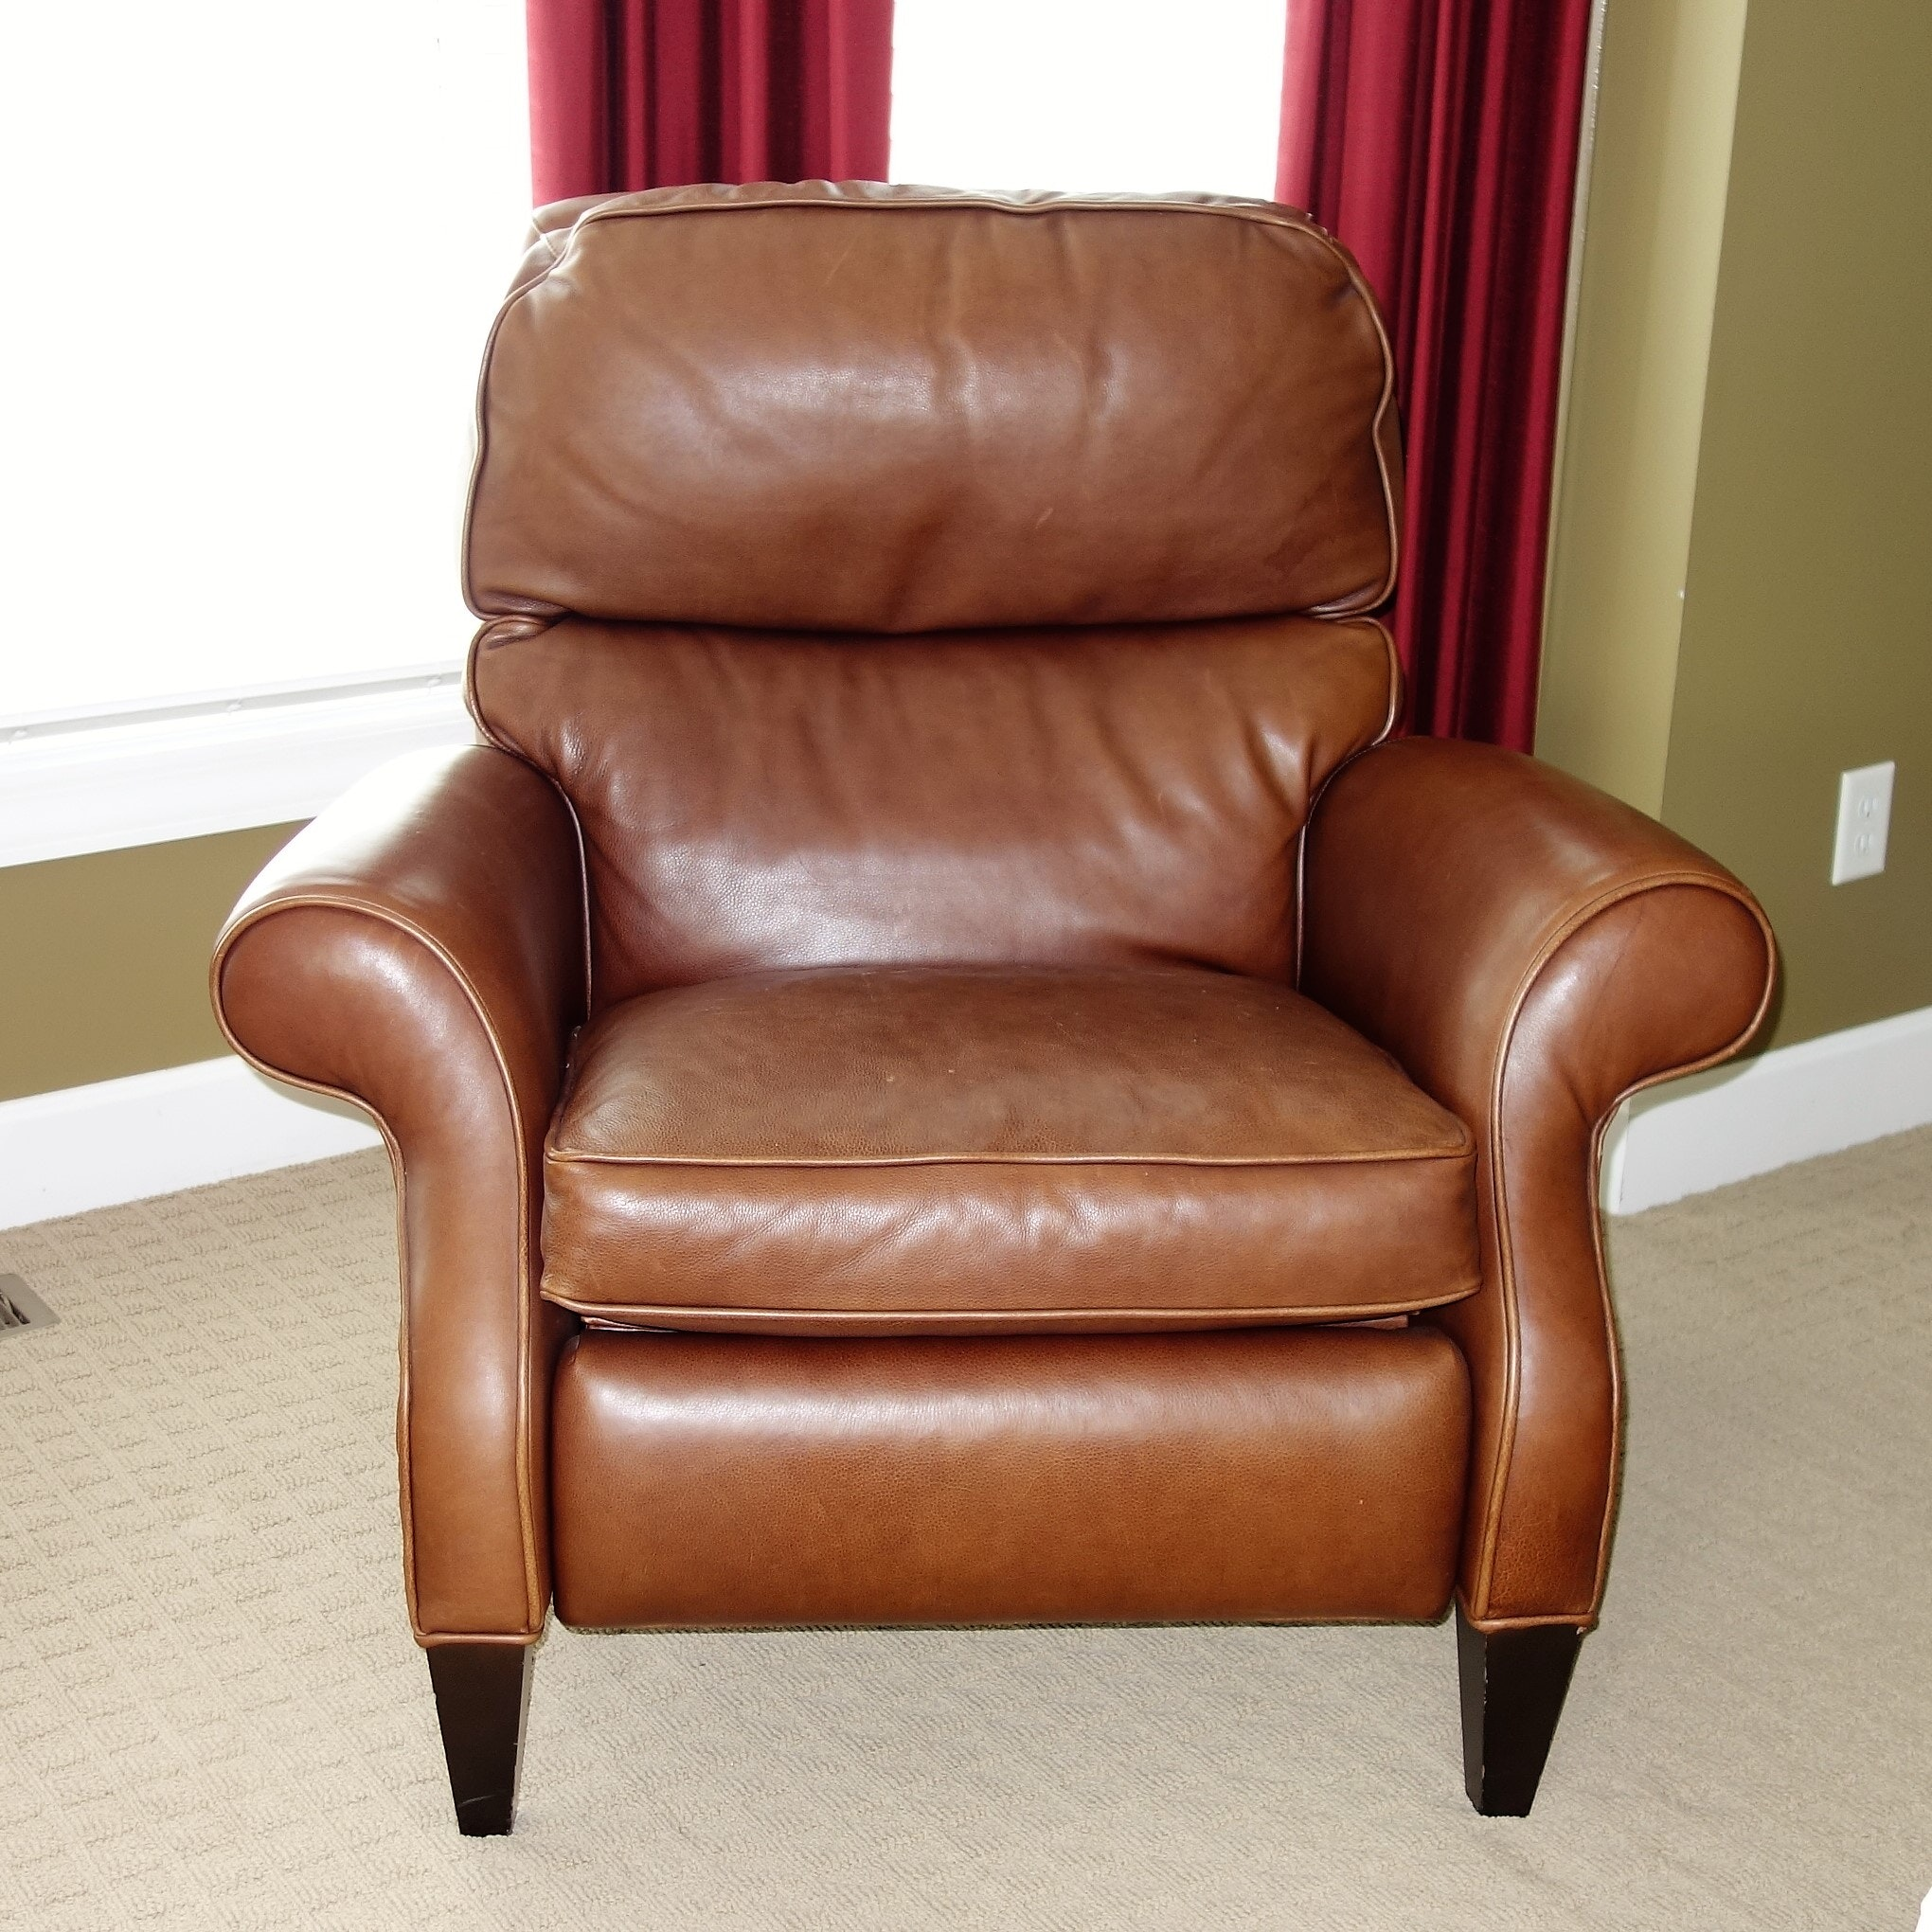 Aveline  Leather Recliner by Arhaus Furniture ... & Aveline